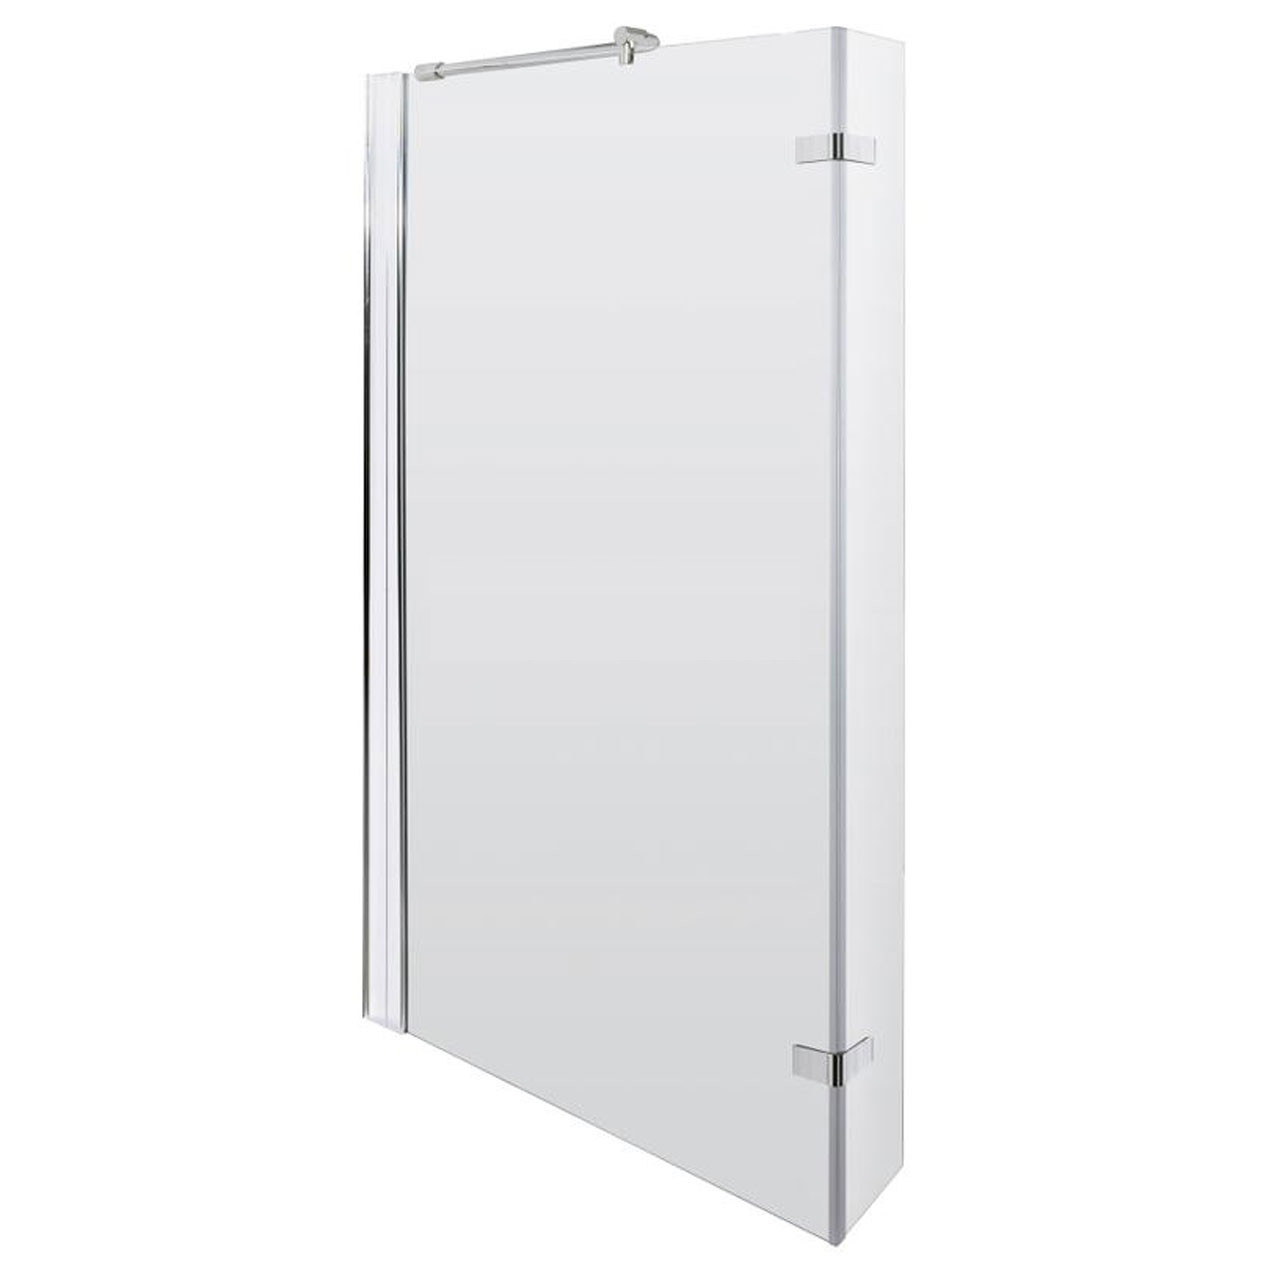 Square shower bath hinged screen